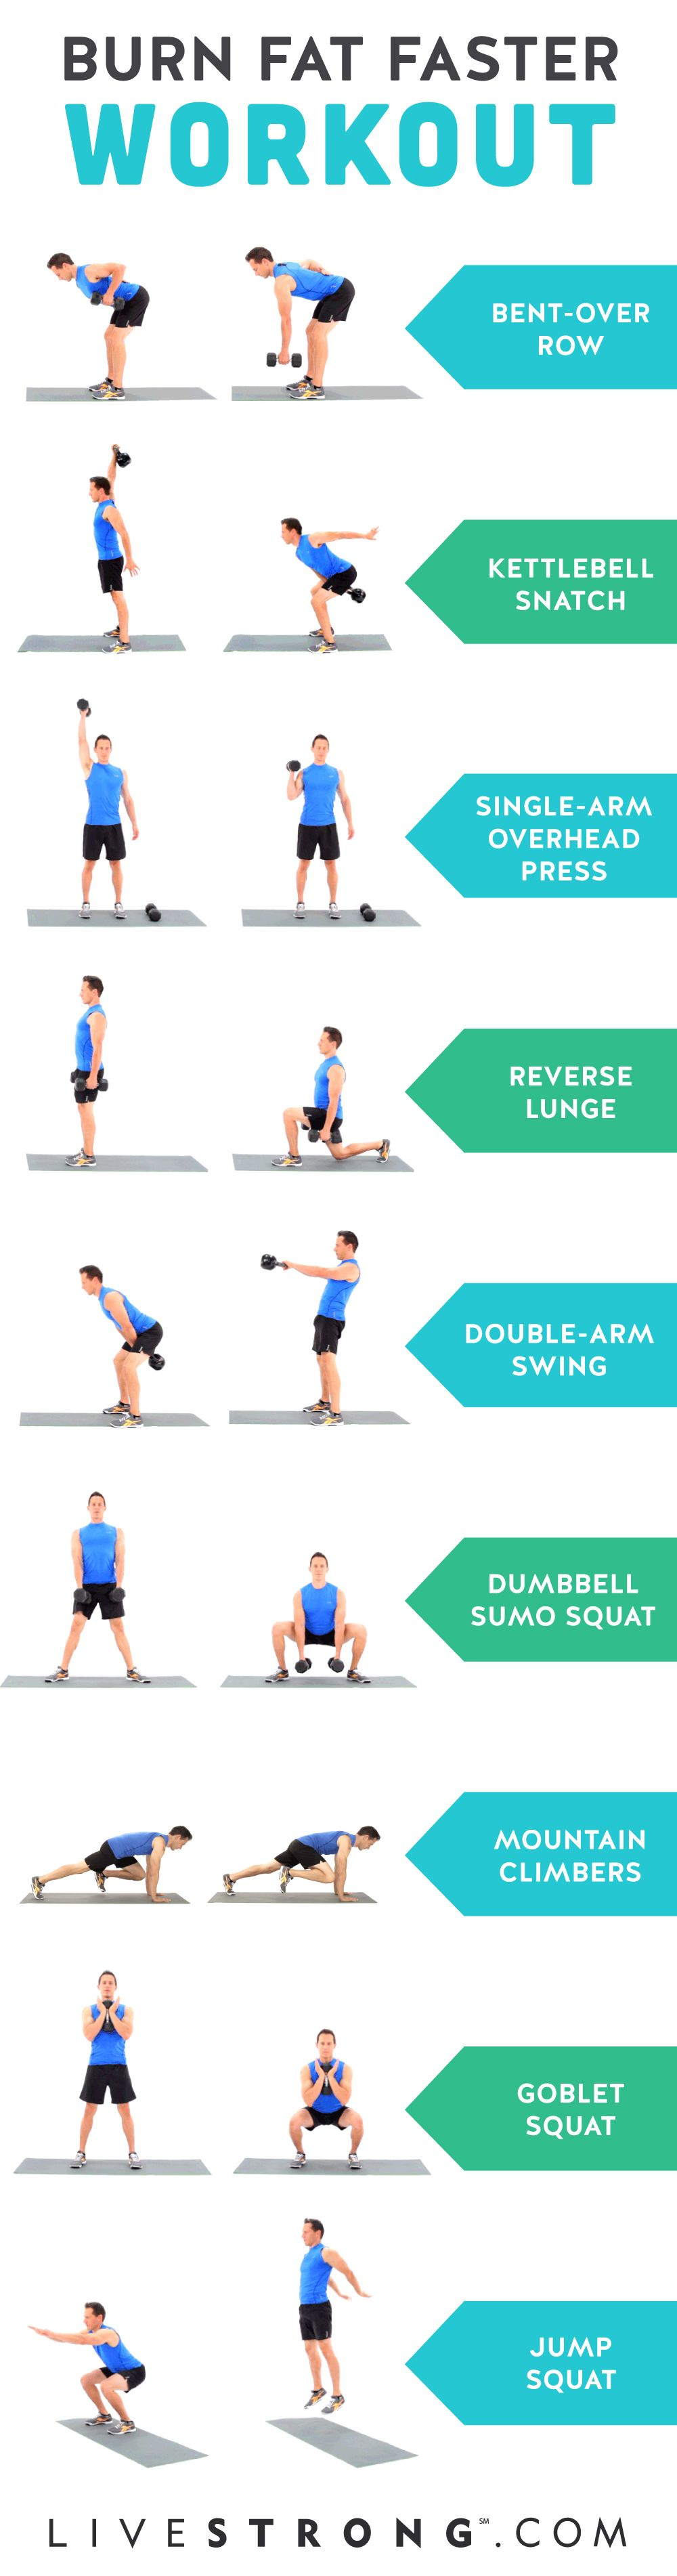 best hour workout weight loss